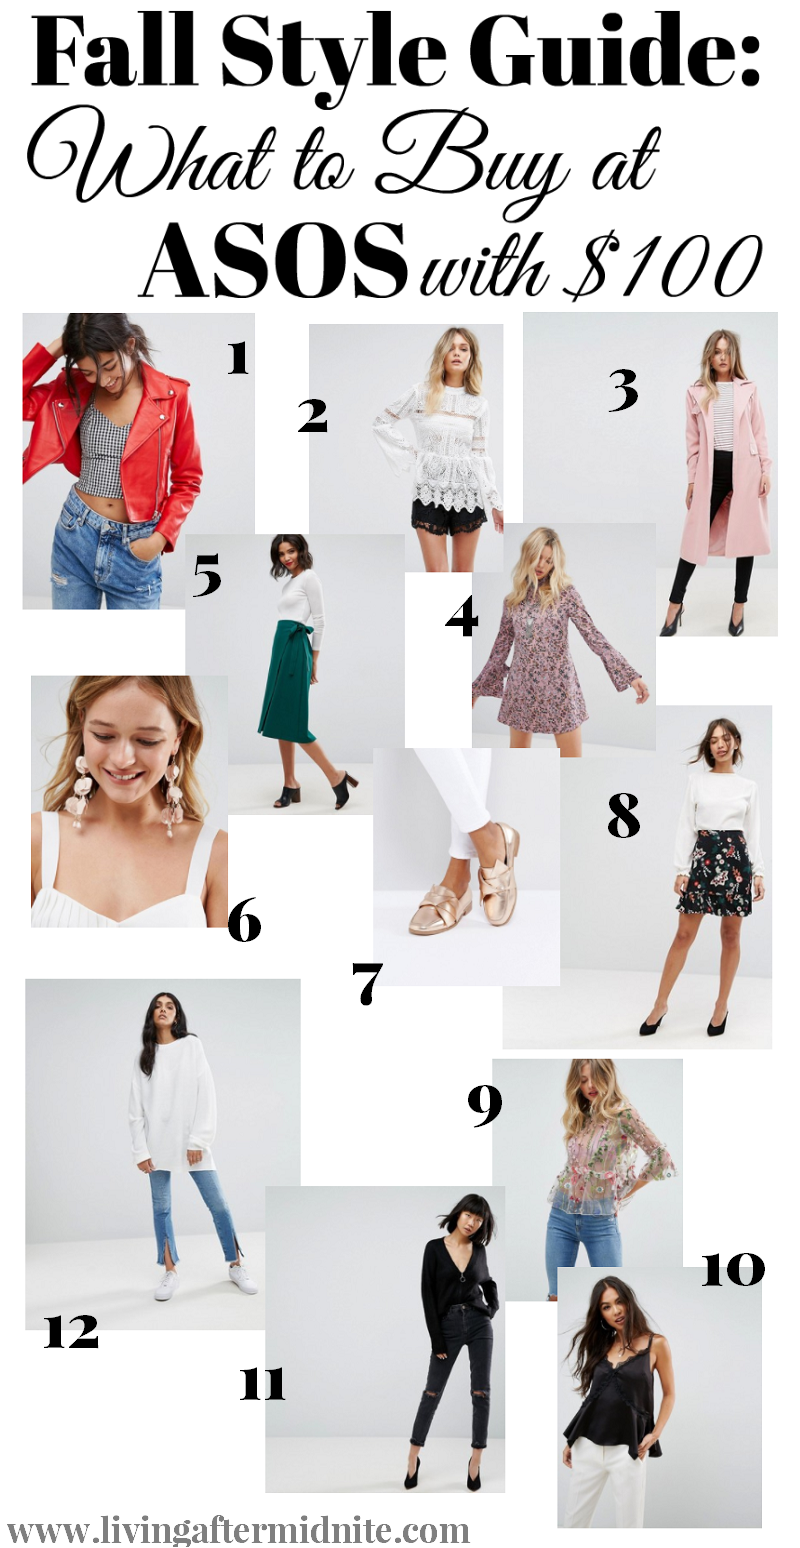 Fall Style Guide: What to Buy at ASOS with $100